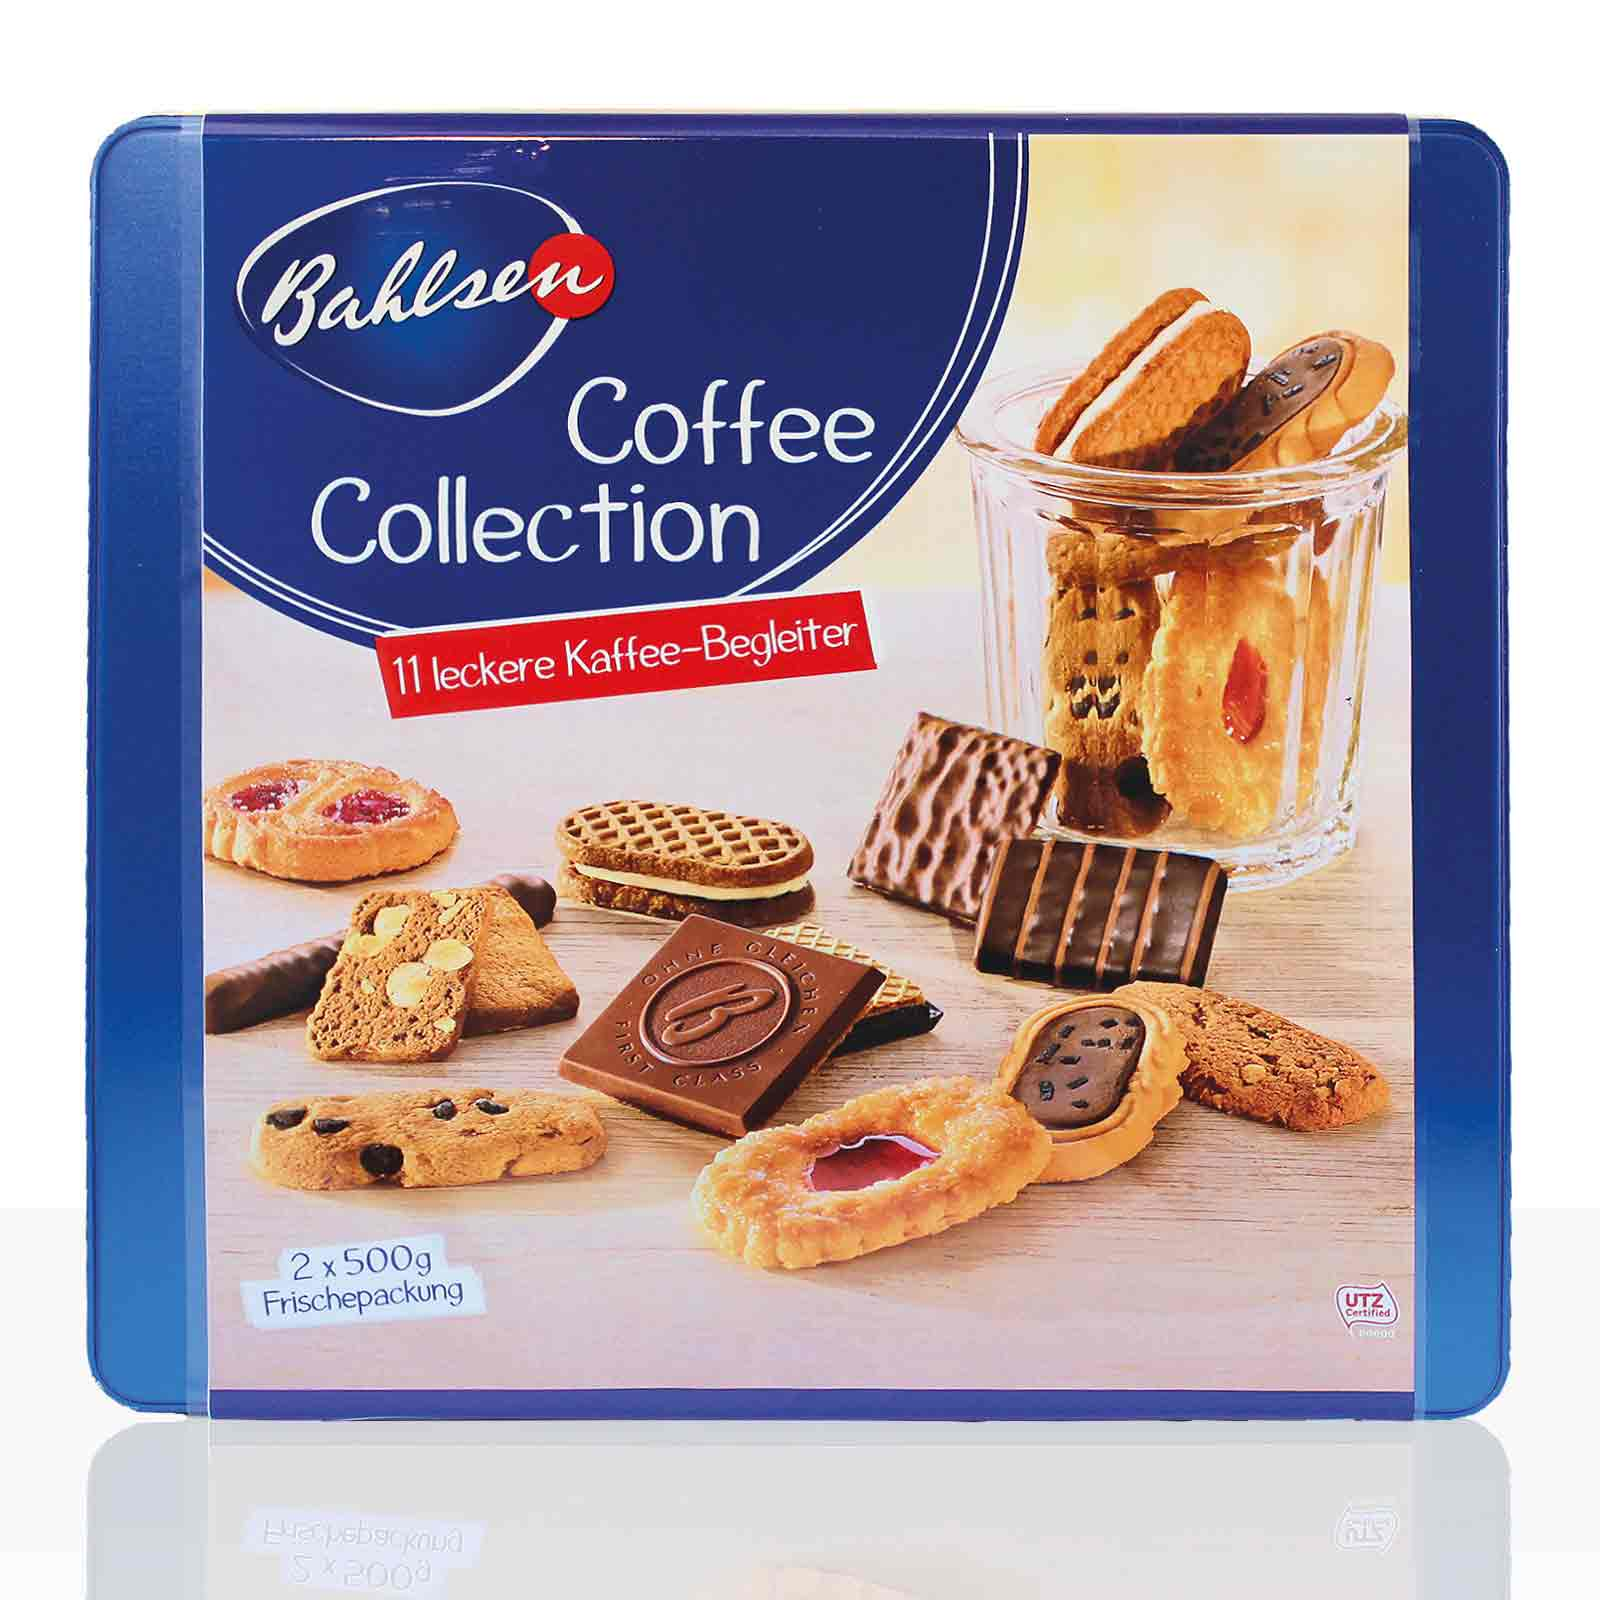 Bahlsen Kekse Coffee Collection Gebäck mit 11 erlesenen Sorten 2 x 500g